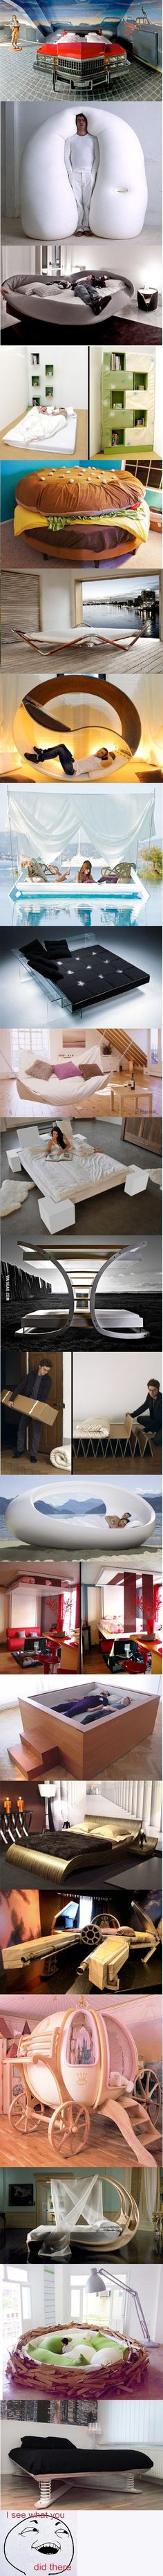 Bed lvl: creative